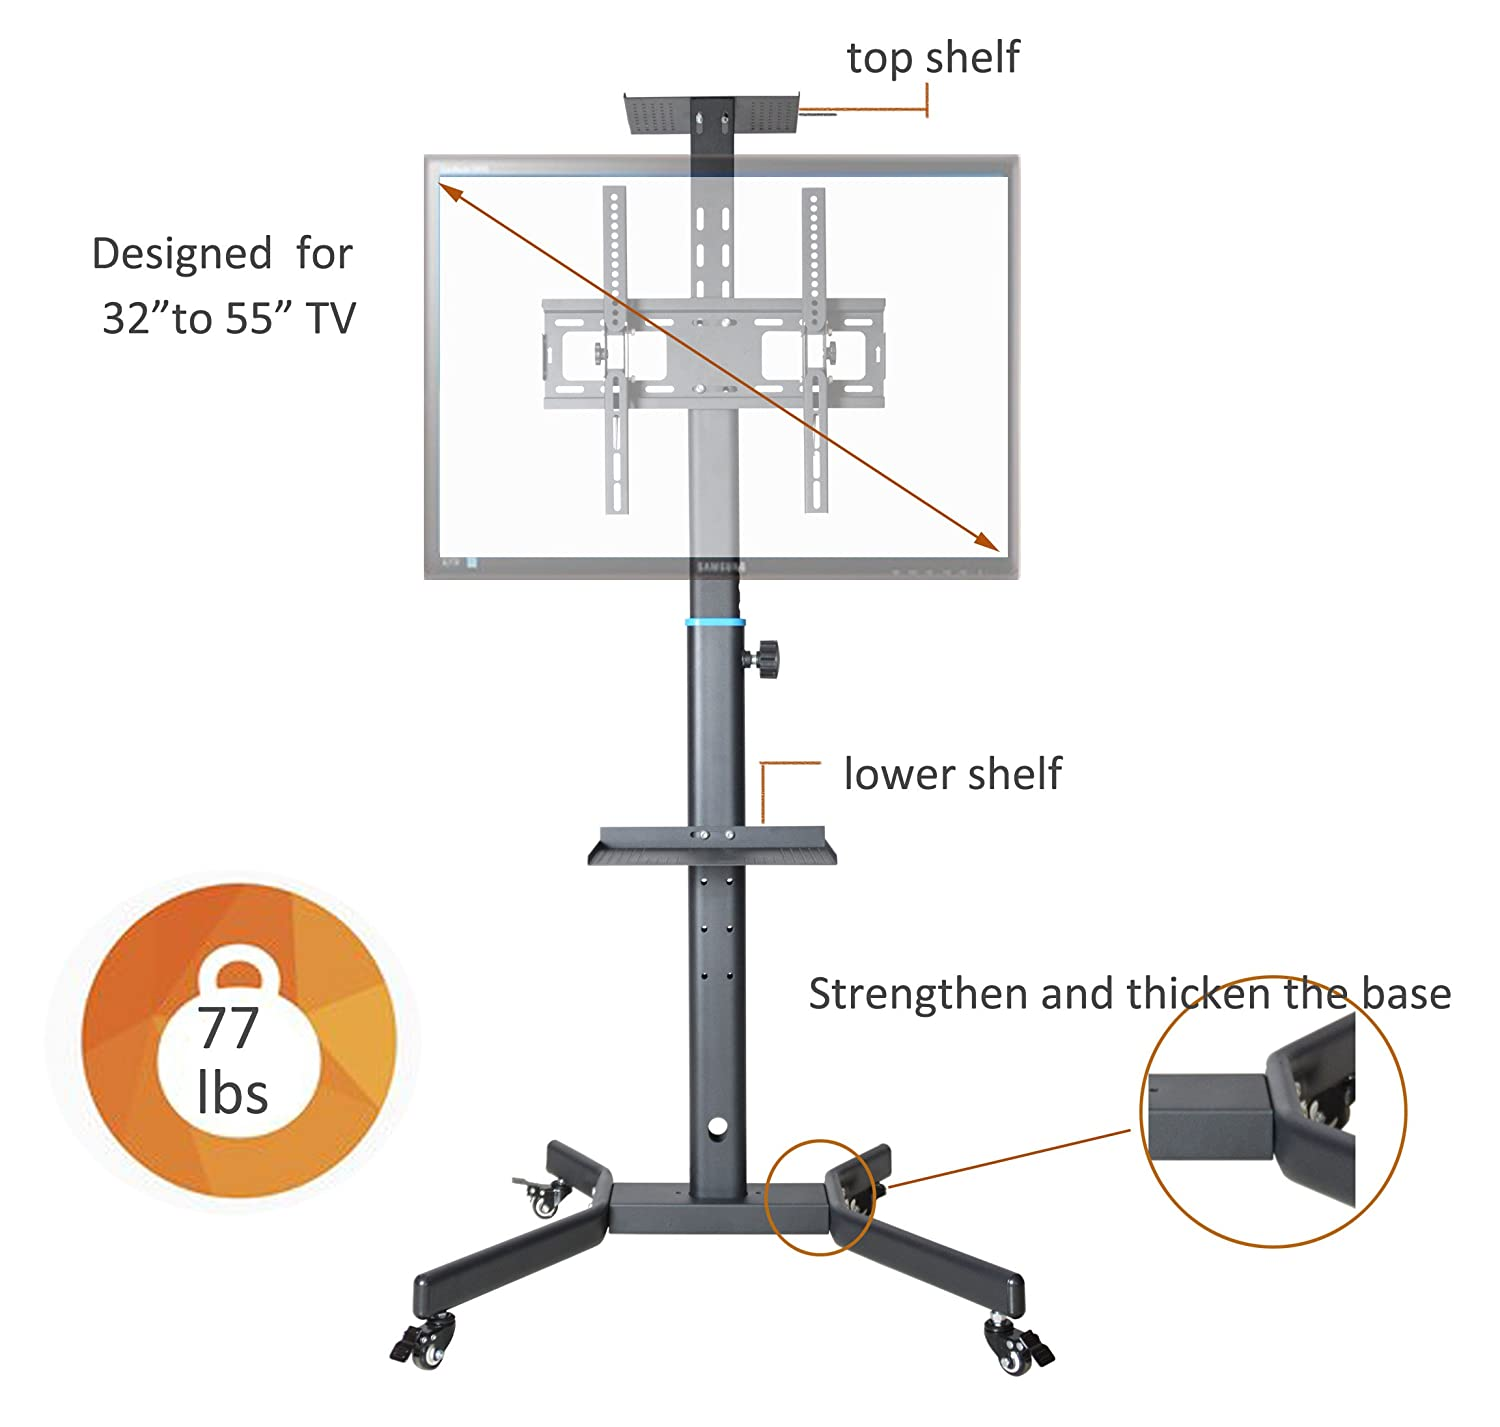 Cnyf Pts008 Mobile Tv Cart For Lcd Led Plasma Flat Screen Panel Basketball Hoop Diagram Trolley Floor Stand With